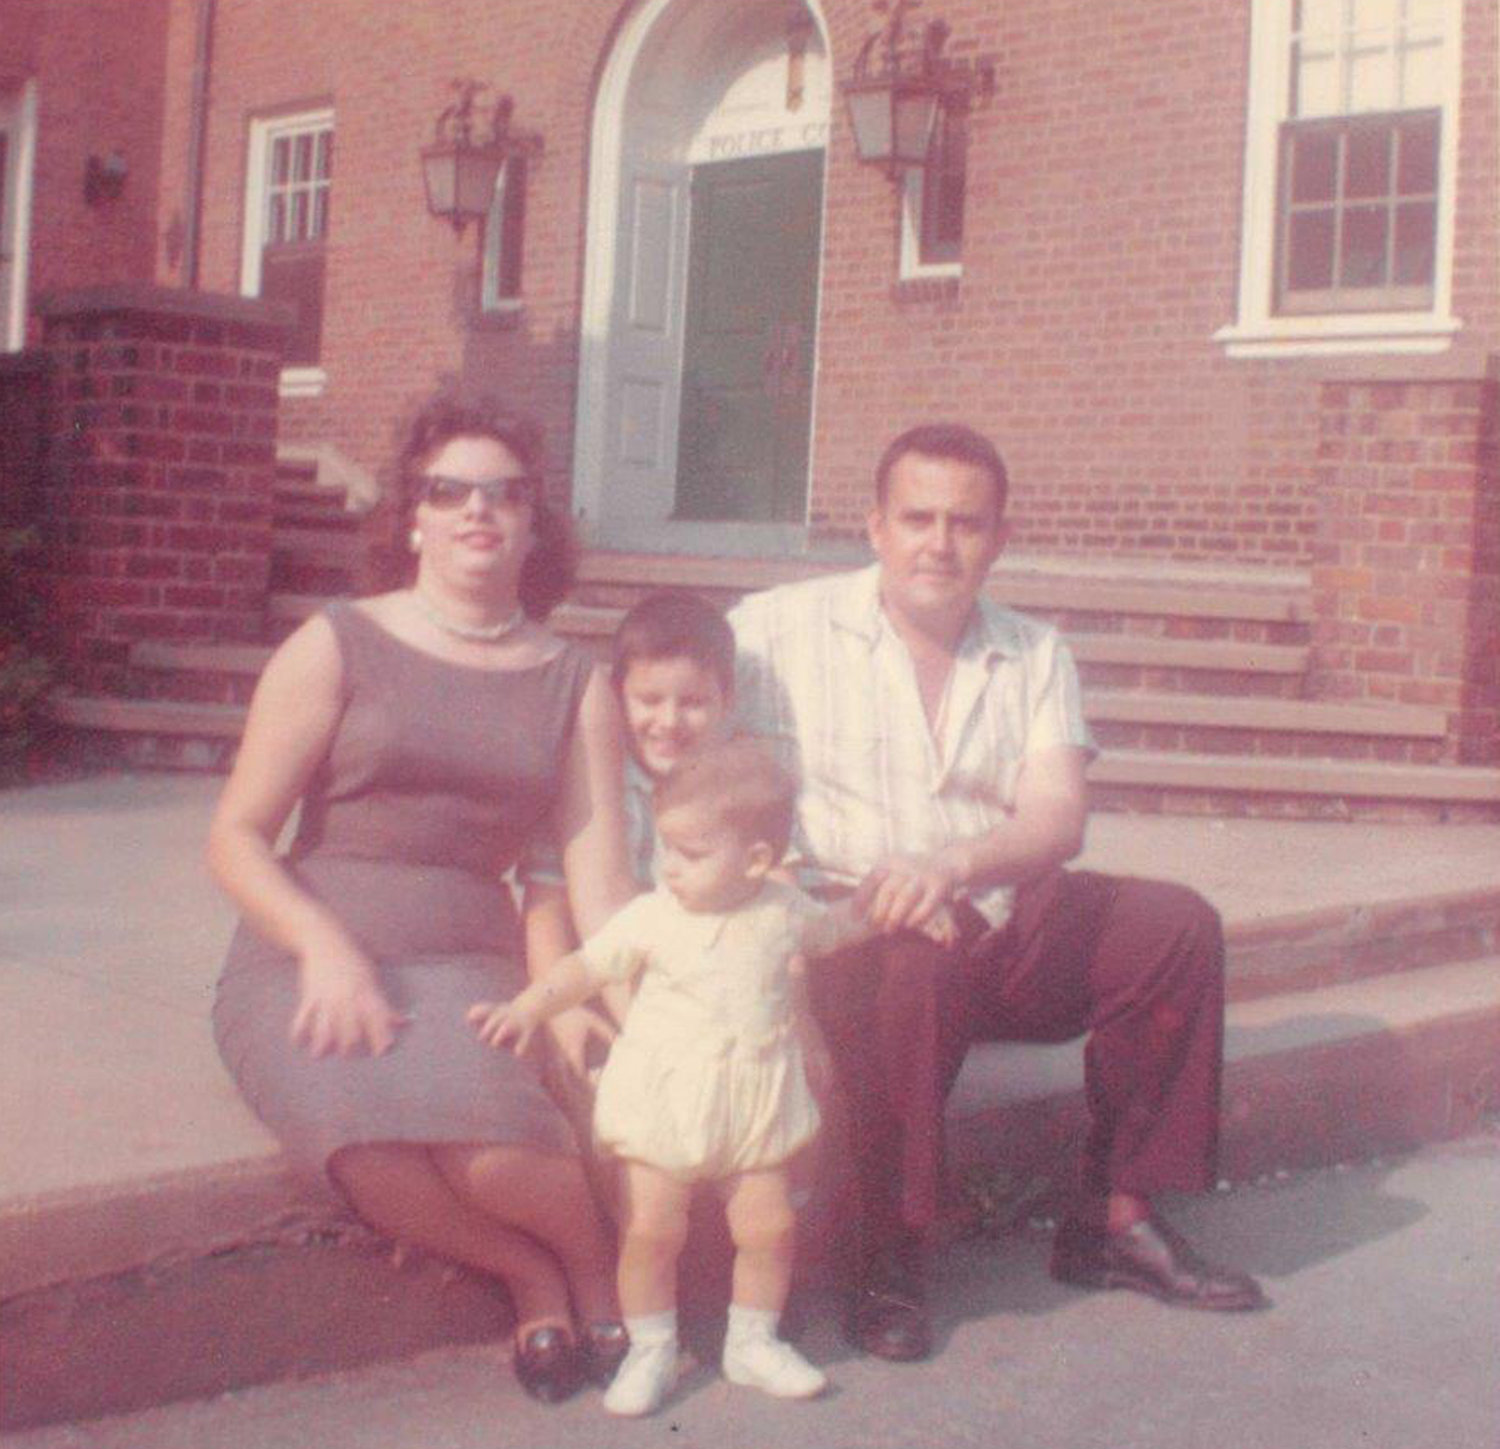 Bermudez and his family moved to Freeport from Cuba when he was 9 months old. Above, a family portrait on their first day in the village, in front of the Police Department. The future chief is at center, in white.